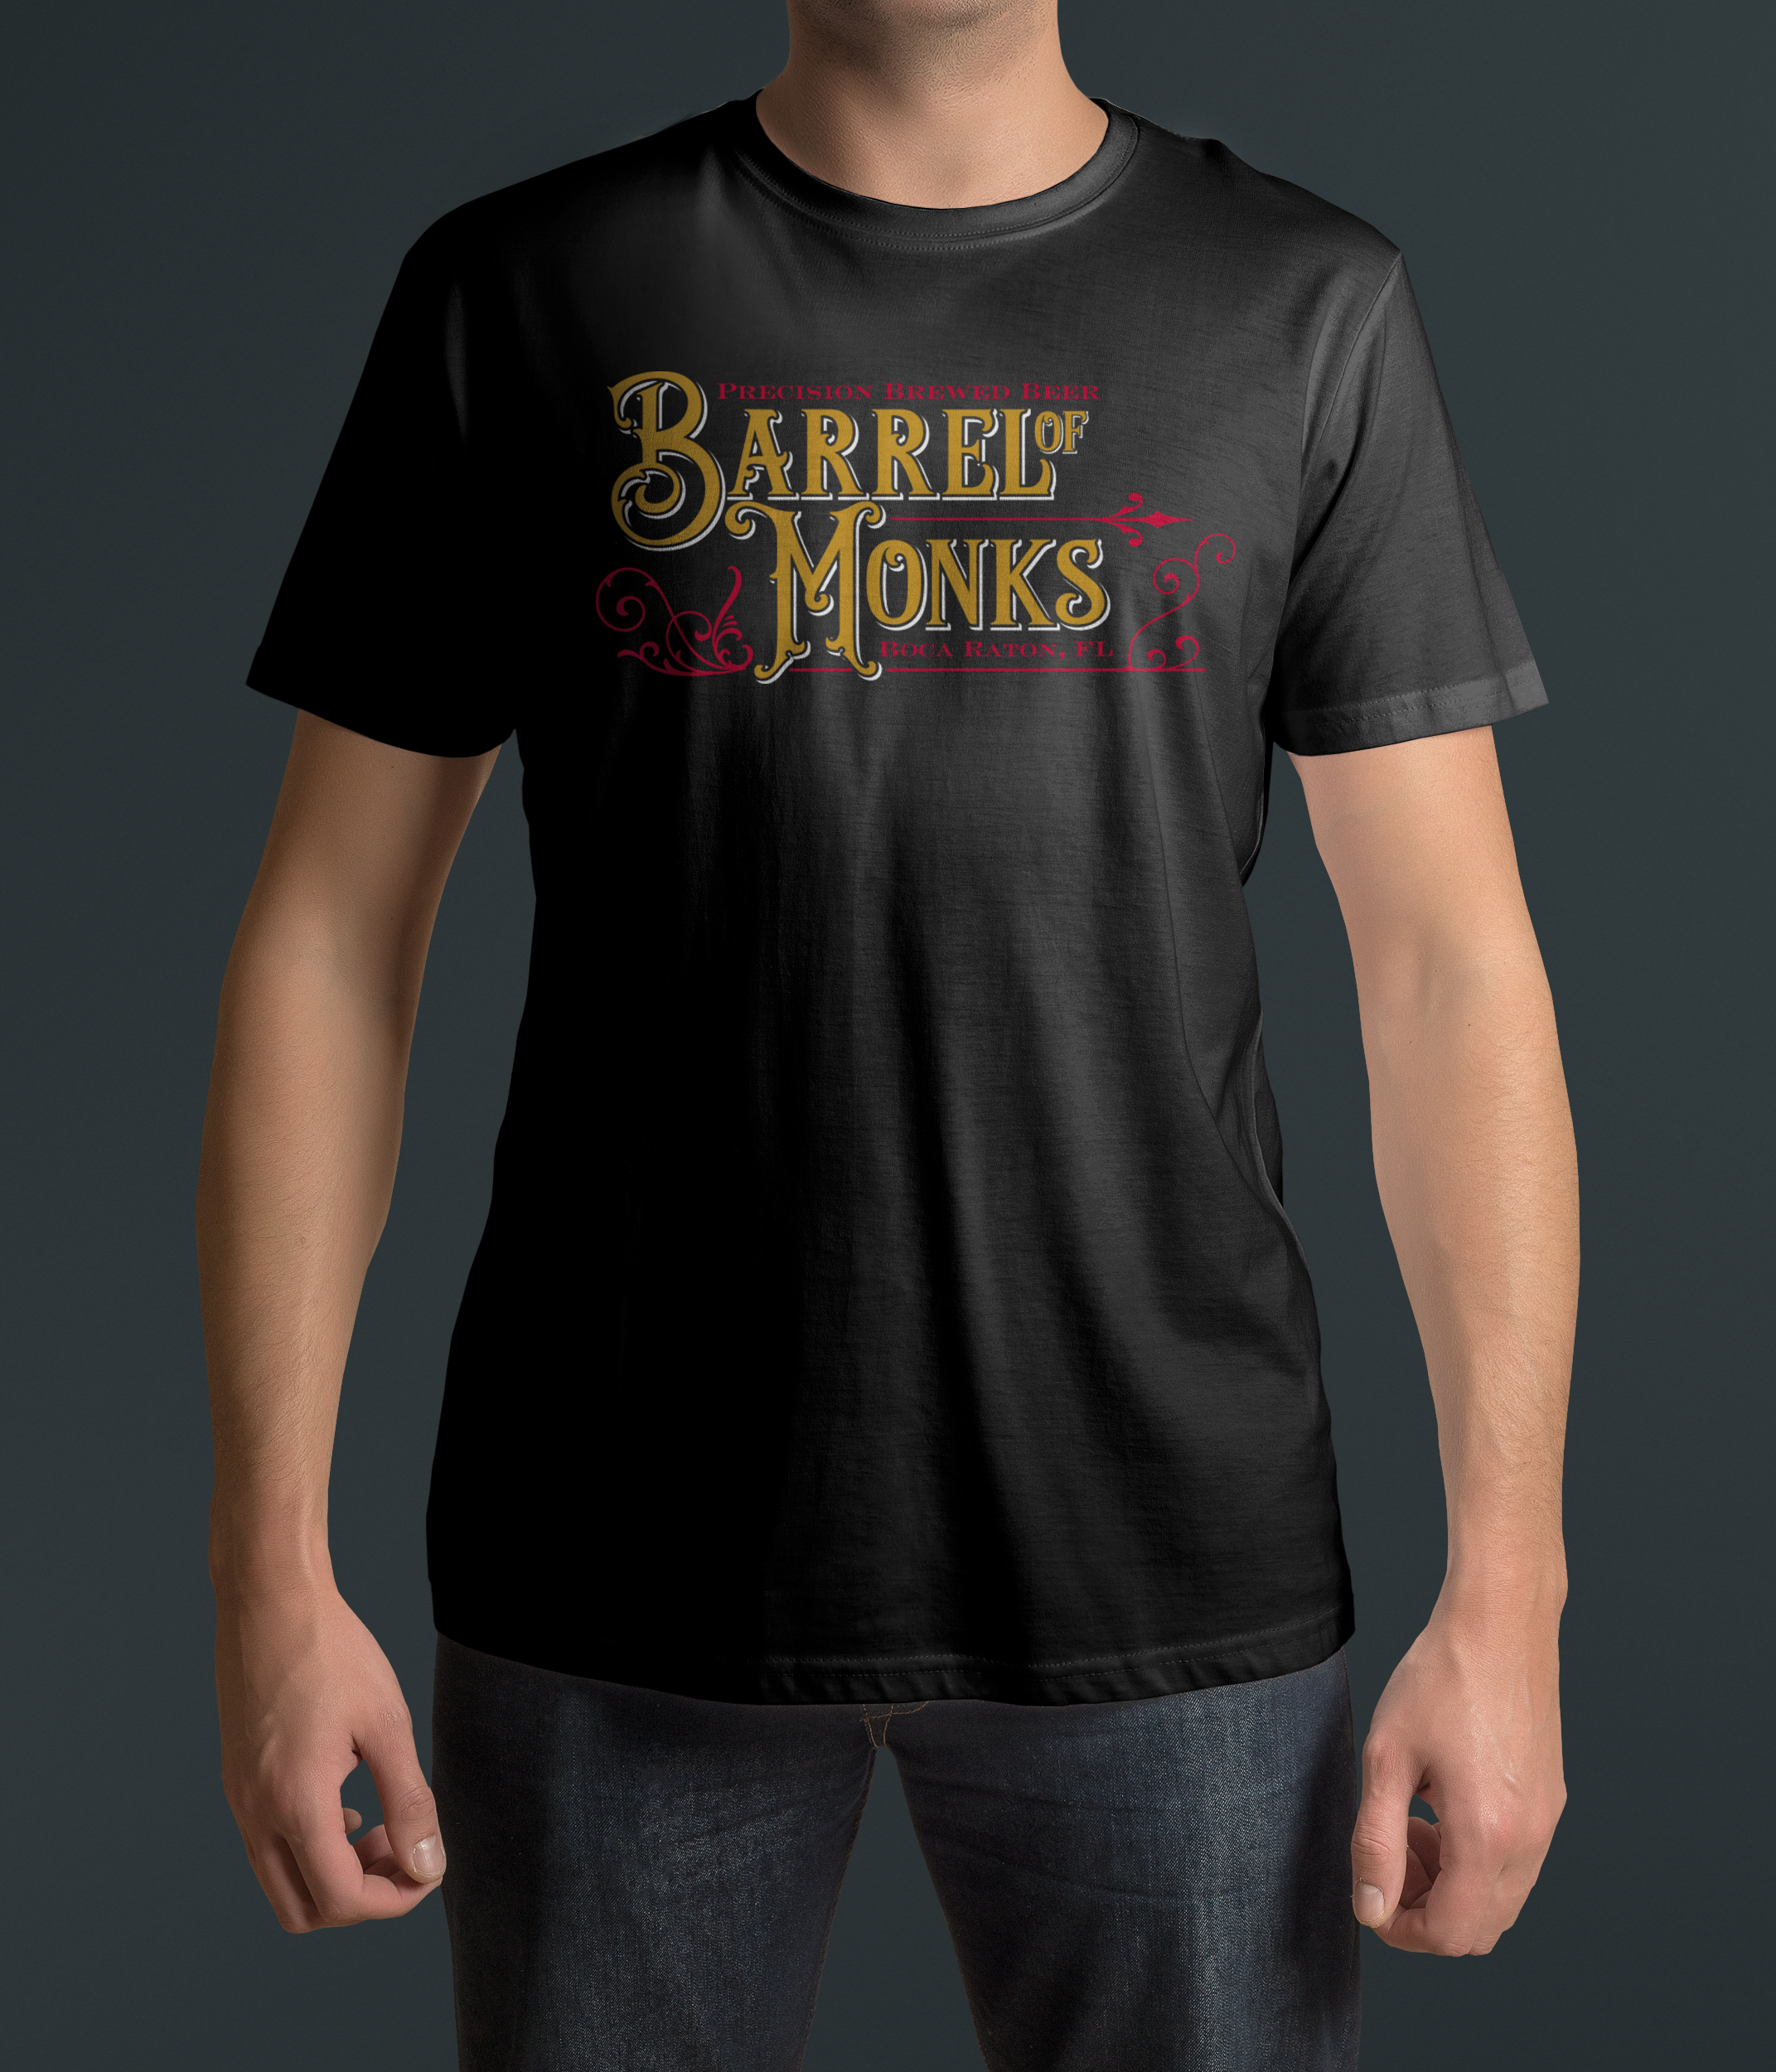 Western/Historian Barrel of Monks Black T Shirt